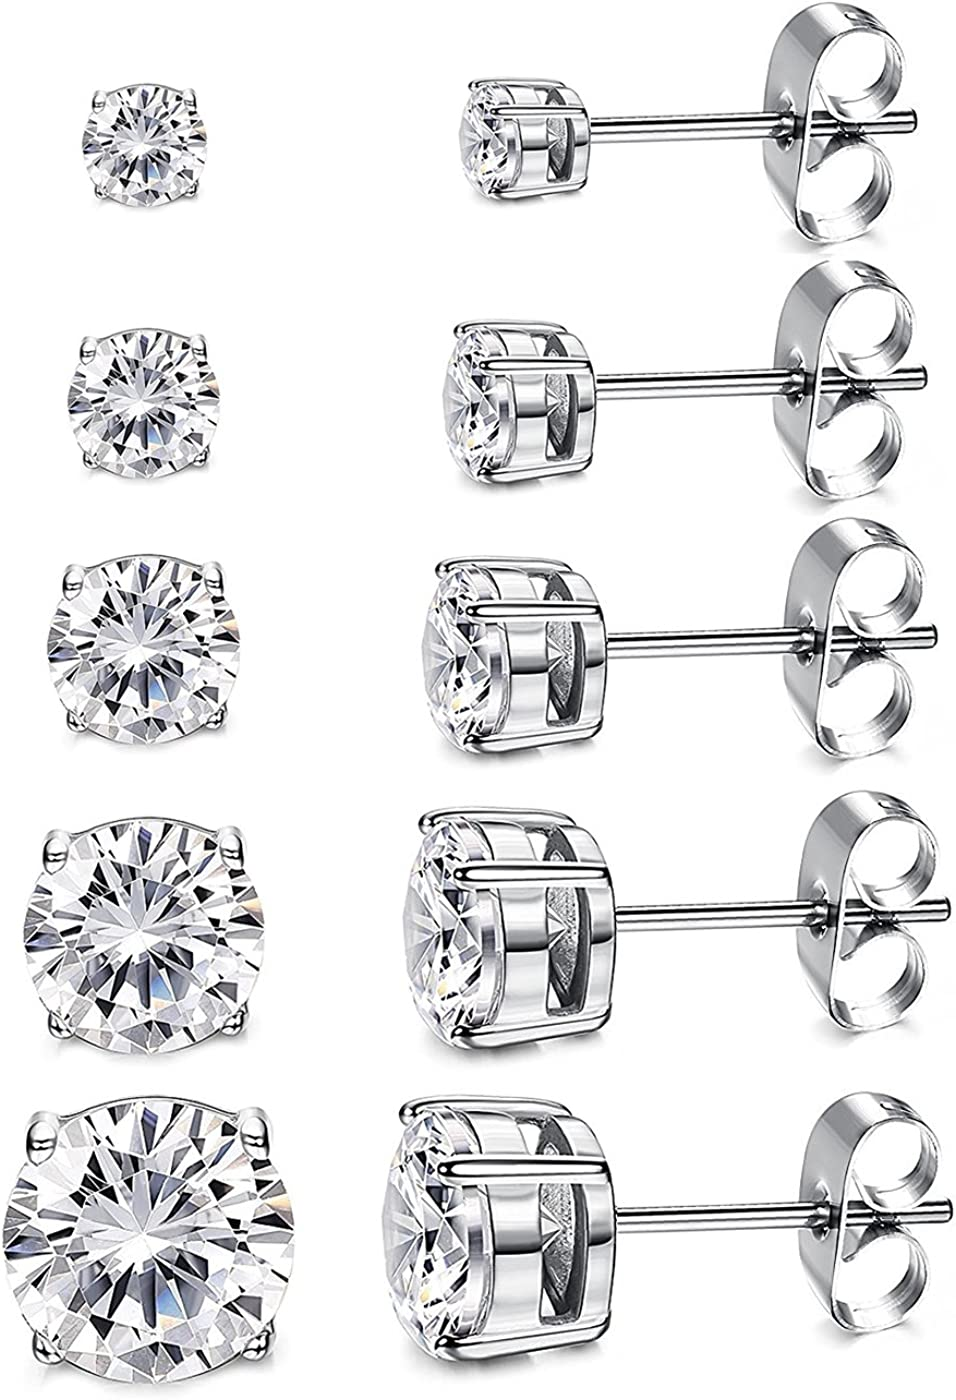 Women's 14K Gold Plated CZ Stud Earrings Simulated Diamond Round Cubic Zirconia Ear Stud Set(5 Pairs)